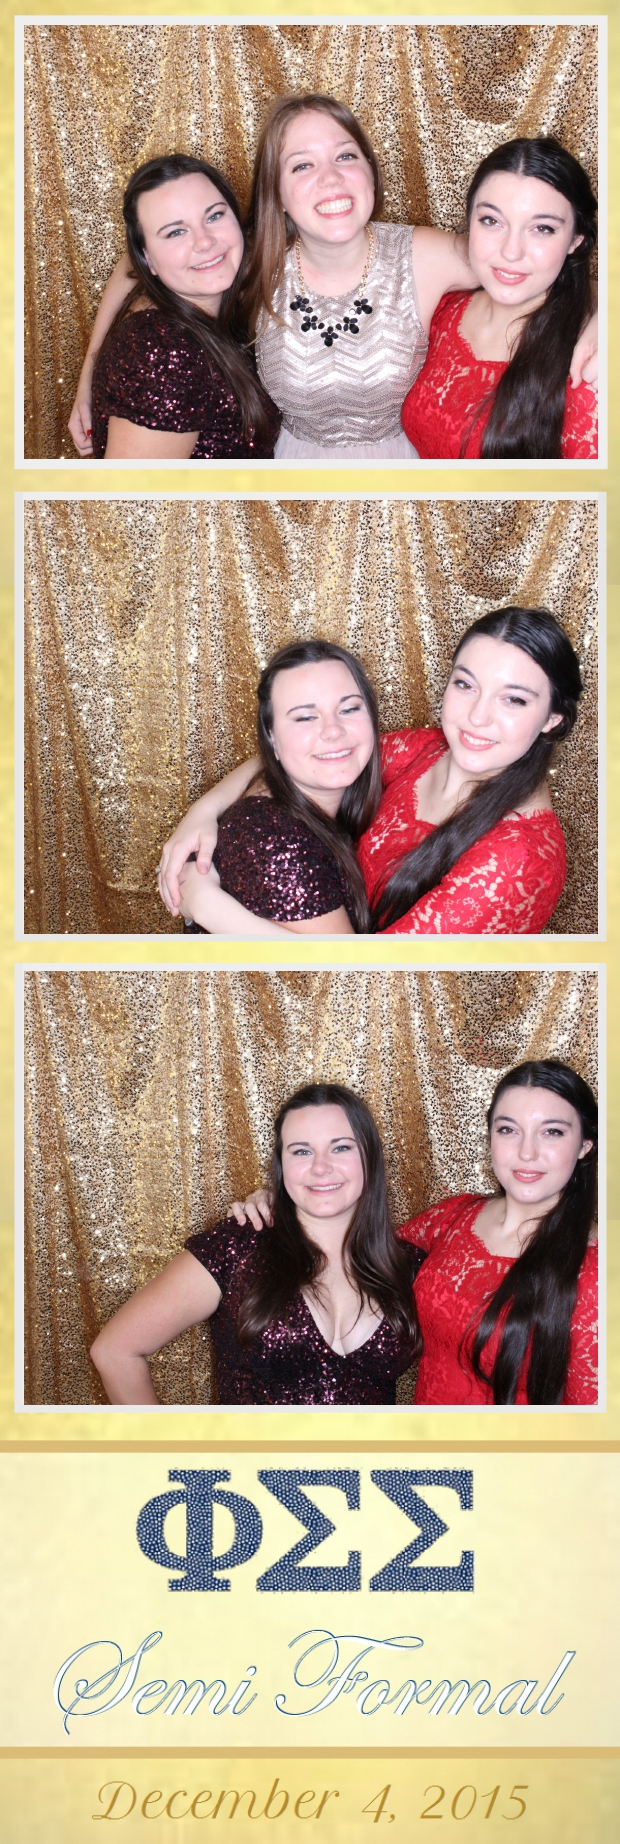 Guest House Events Photo Booth Phi Sigma Sigma Semi Formal (59).jpg